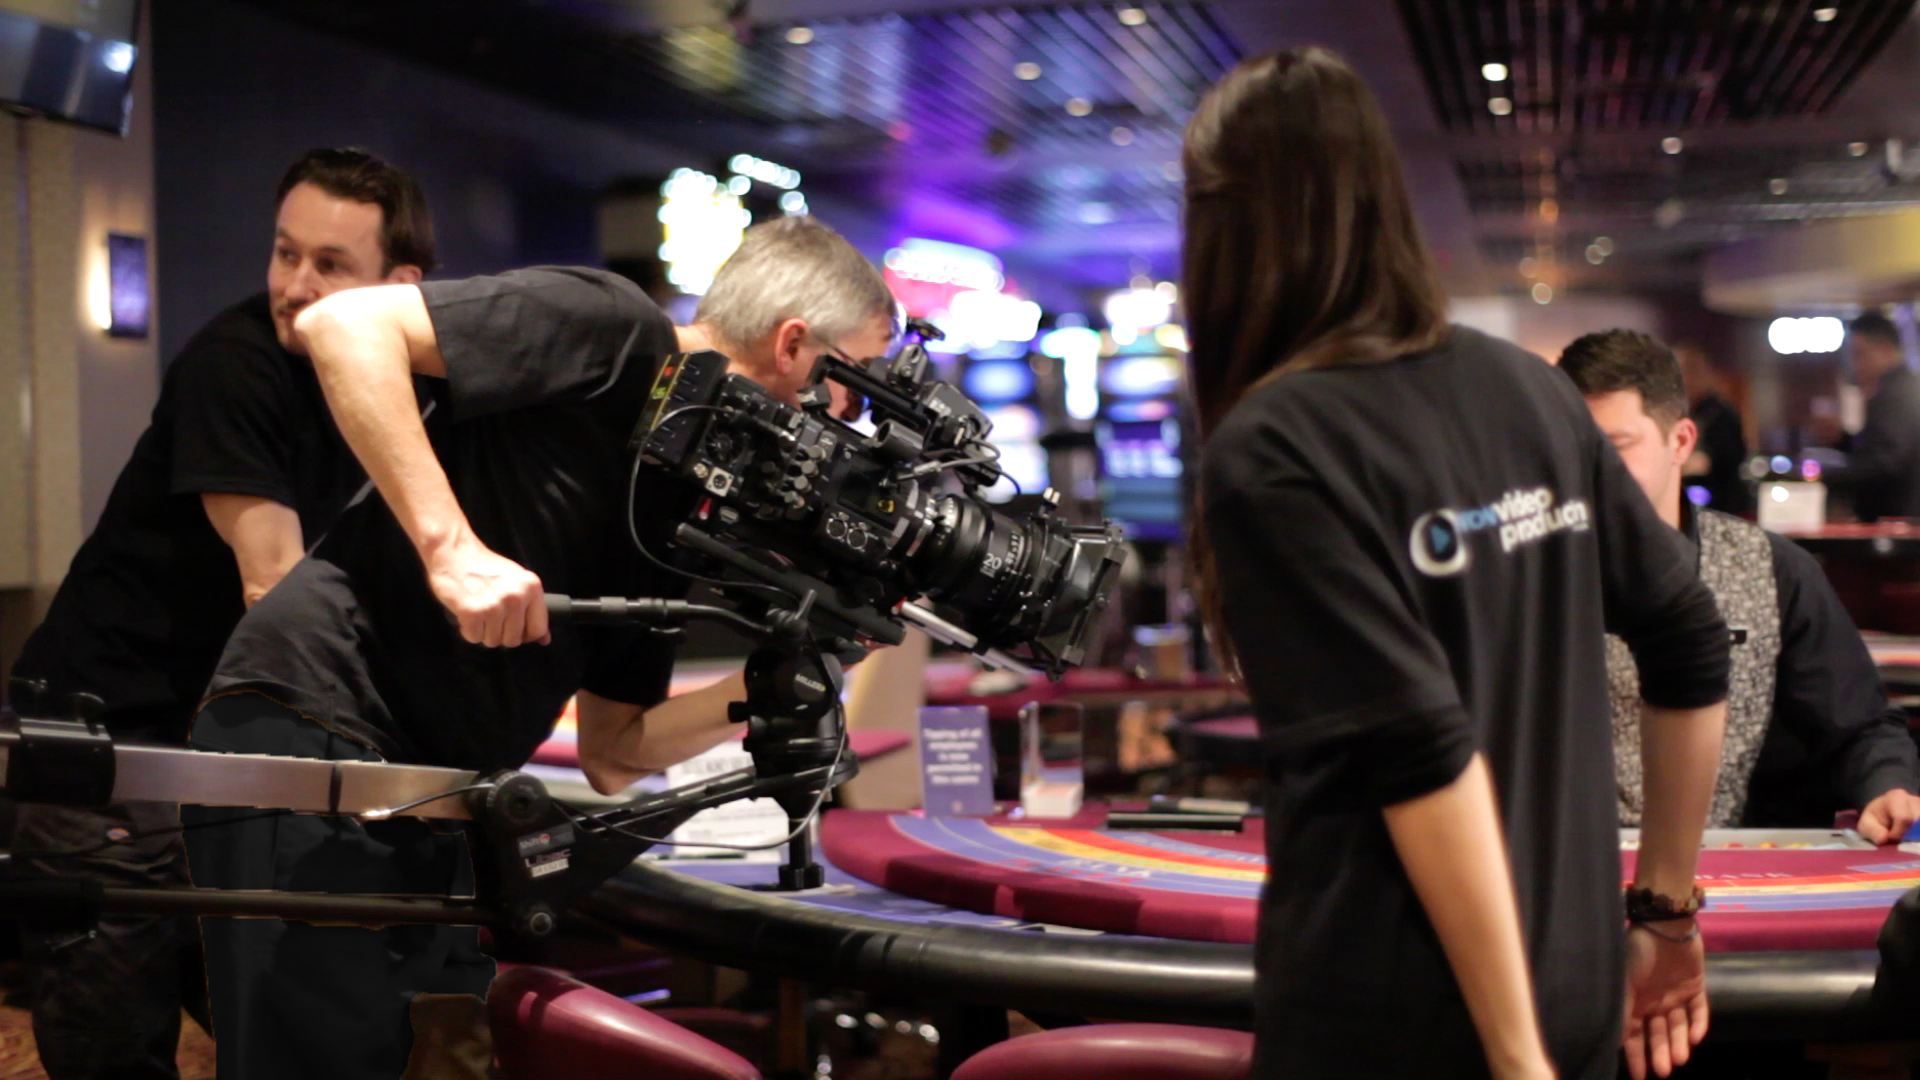 https://upload.wikimedia.org/wikipedia/commons/e/e3/WOW_Video_Production_-_Grosvenor_Casinos.png